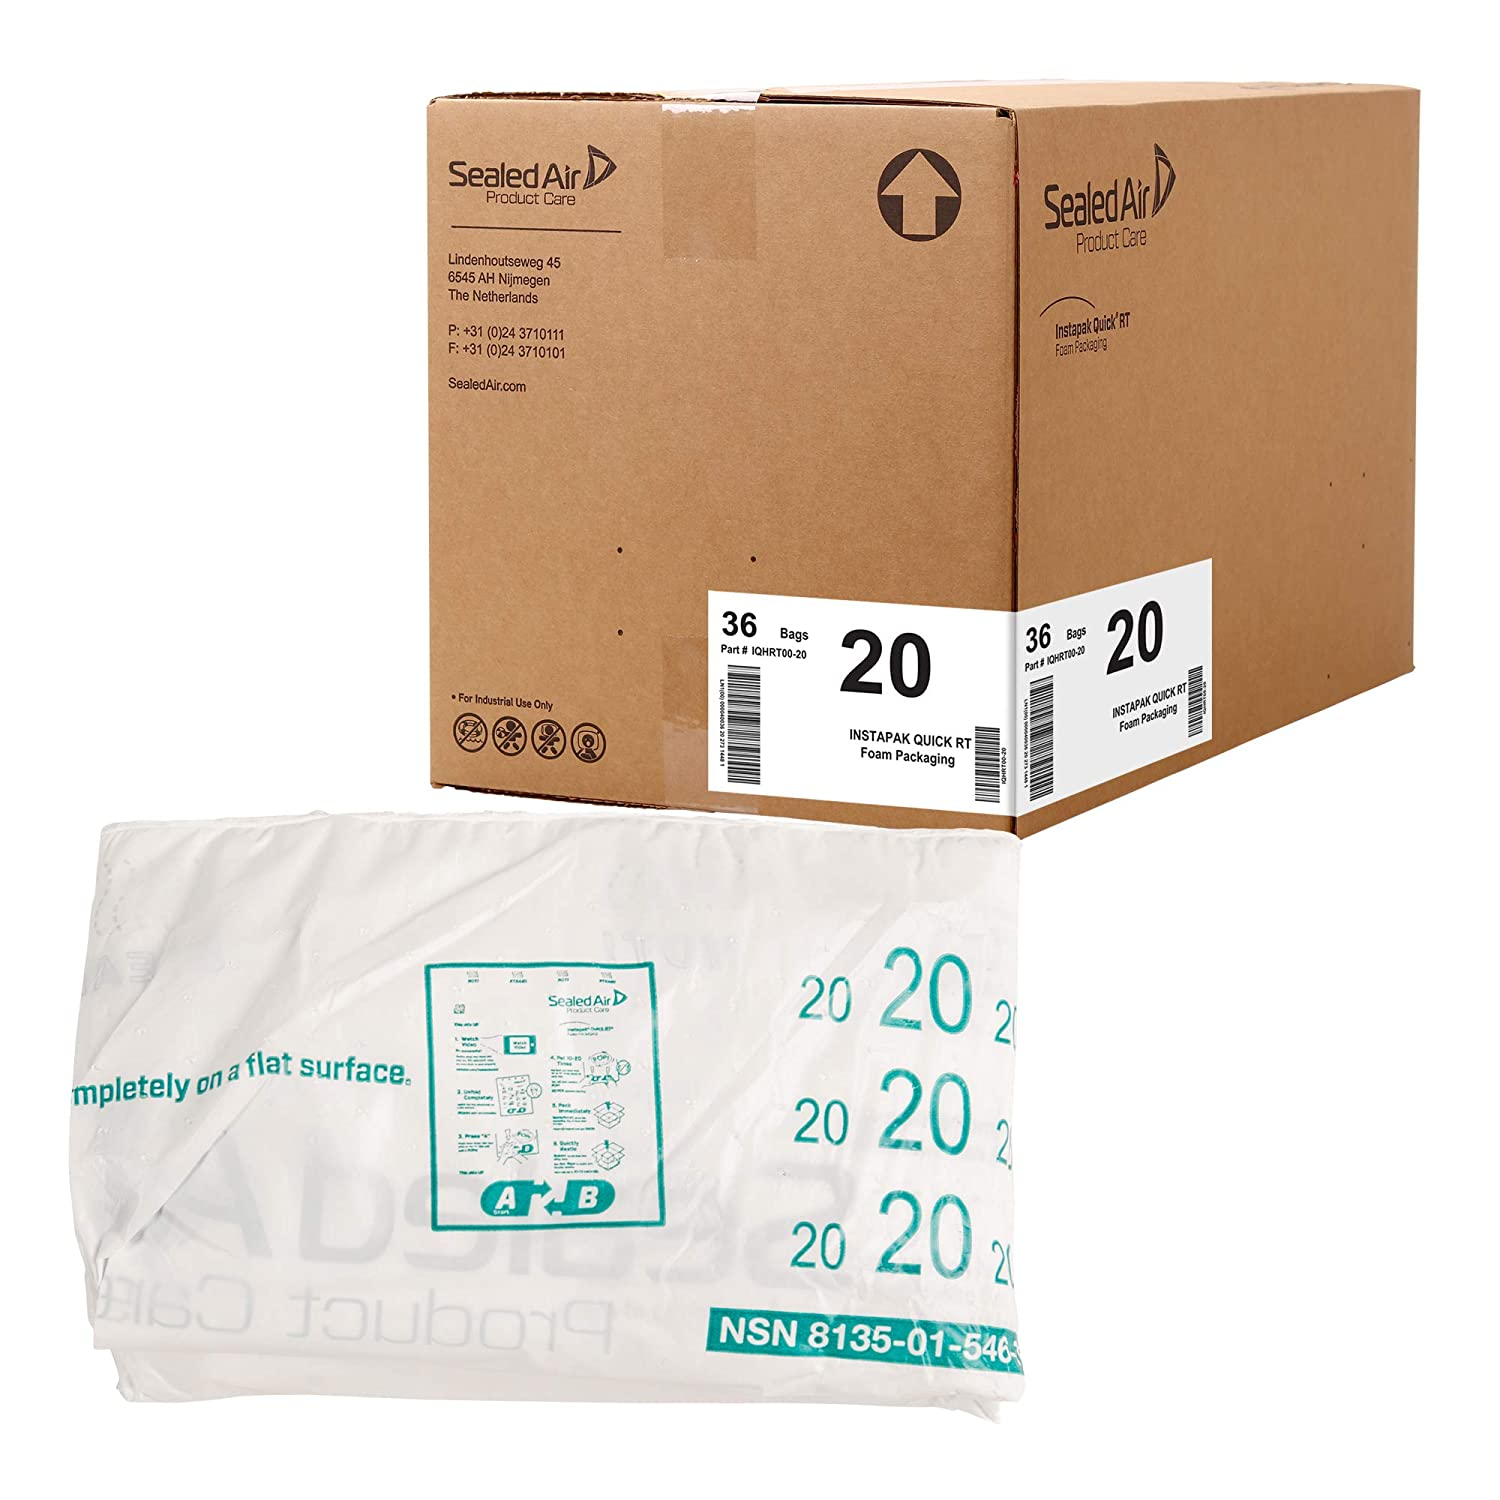 """Sealed Air Instapak Quick RT #100 Heavy Duty Expandable Foam Bag, for 16""""x16""""x16"""" Box, Case of 72, Expandable Foam Packaging Bags for Shipping Boxes, 25""""x27"""""""